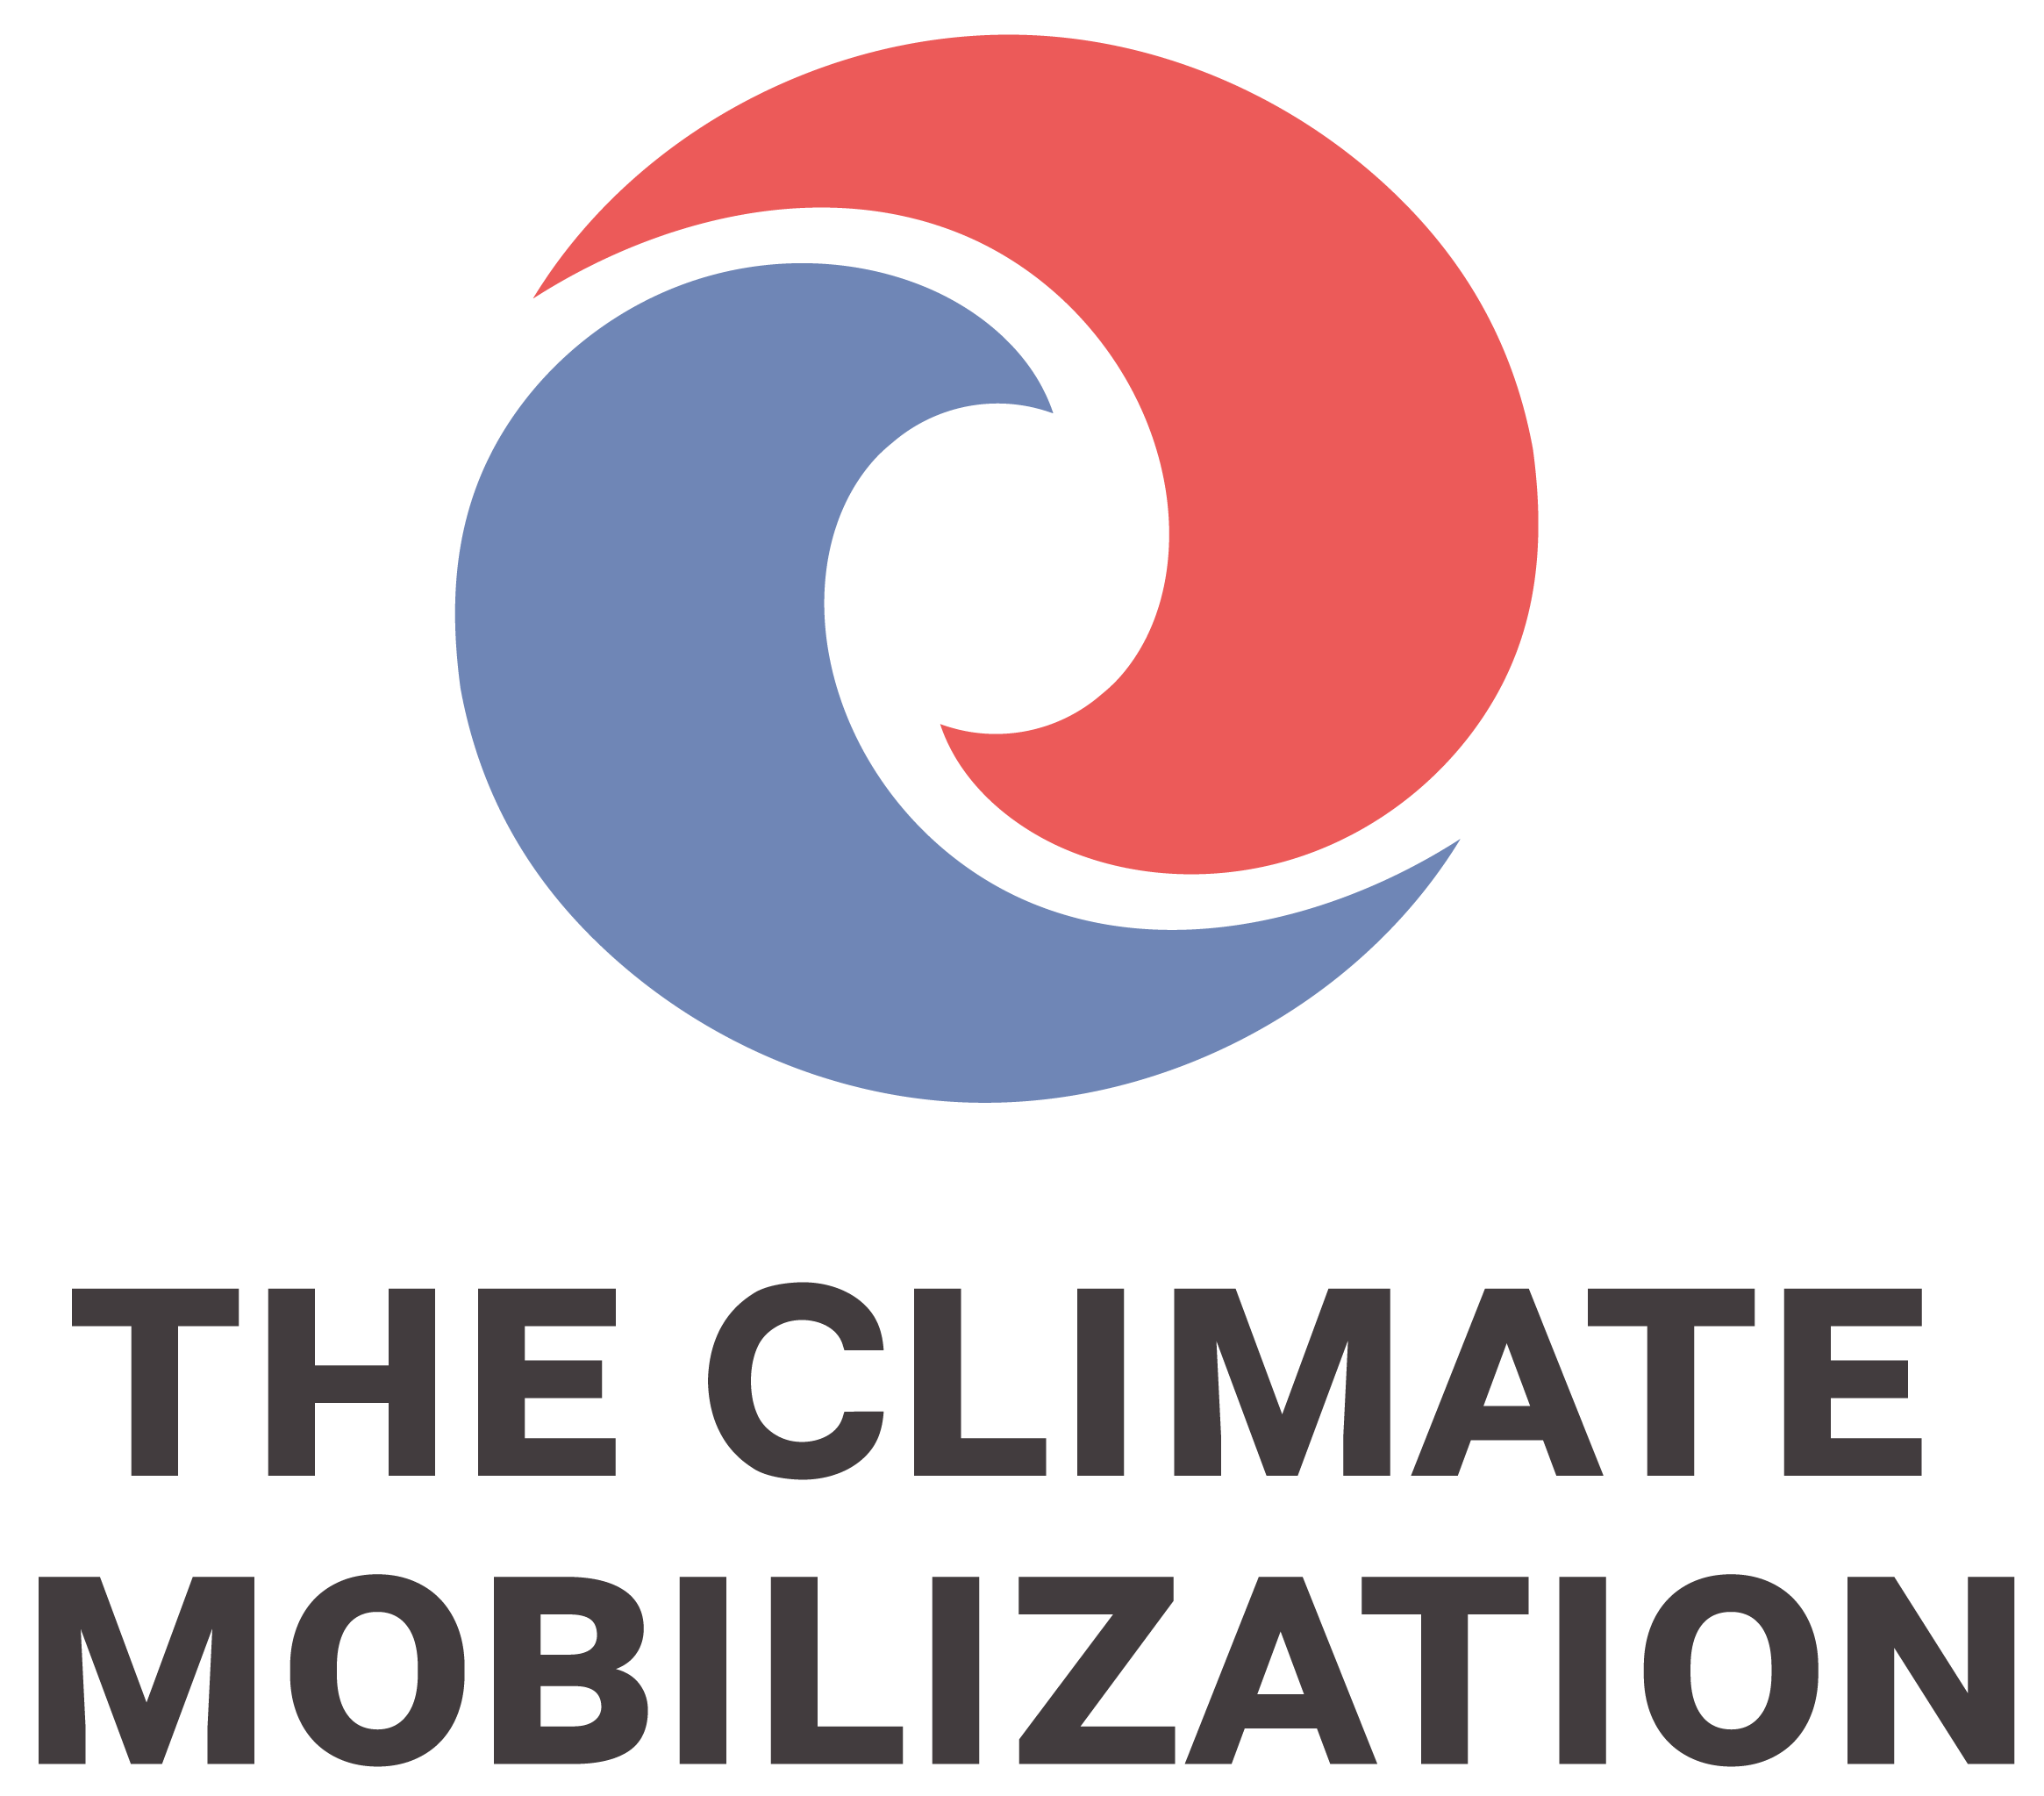 "Mission: initiate a WWII-scale mobilization to reverse global warming and the mass extinction of species in order to protect humanity and the natural world from climate catastrophe.    We are an innovation lab that develops and launches policy frameworks, messaging, and organizing approaches to accelerate the global transition into ""Emergency Mode"" to address the climate emergency."